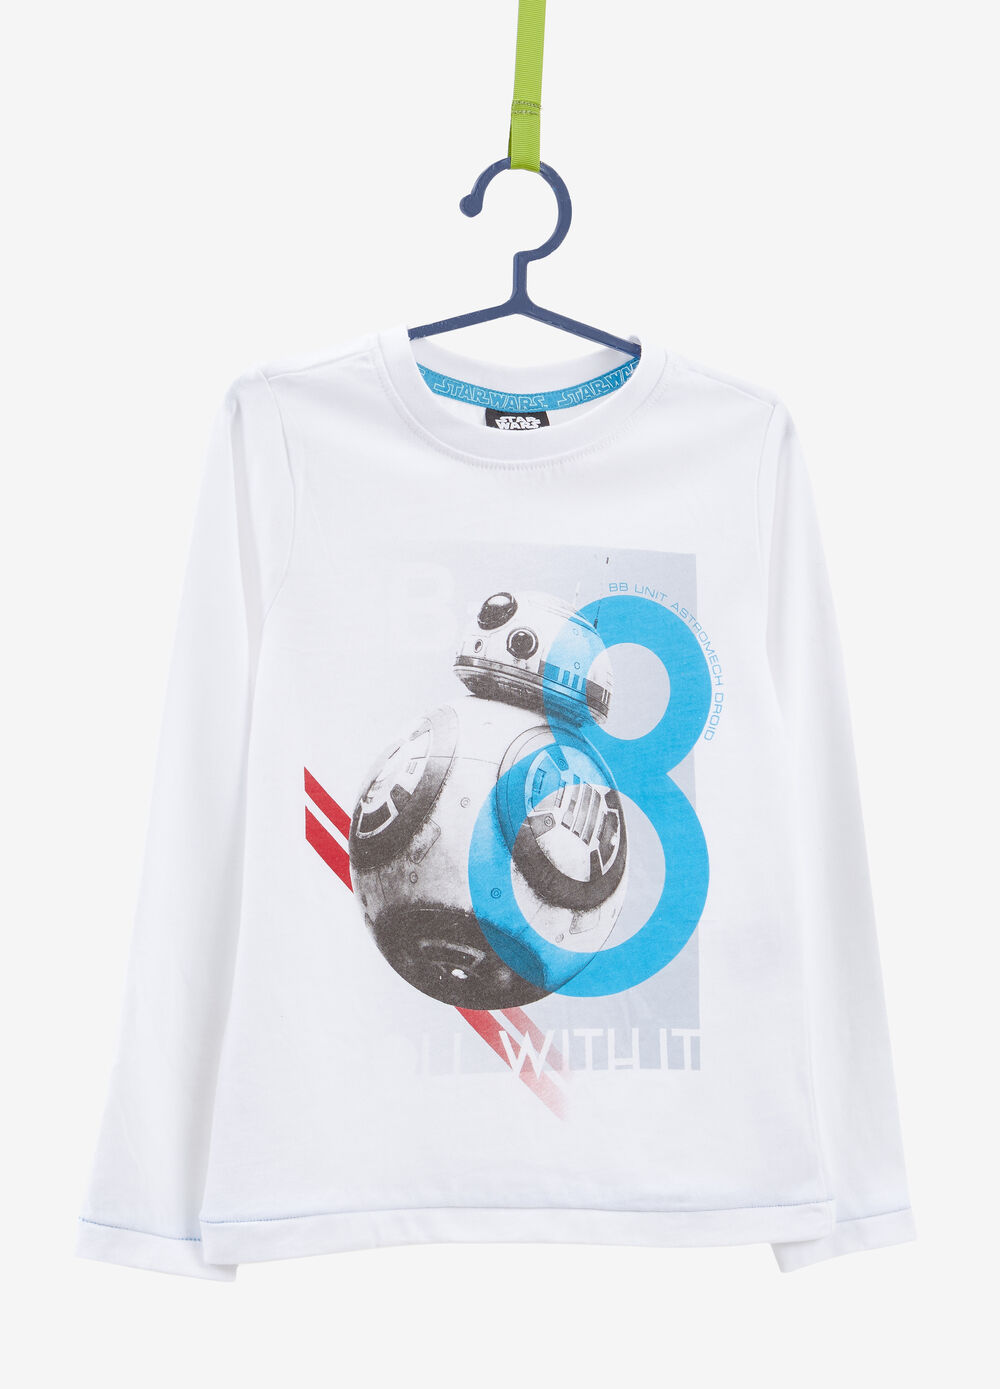 Cotton Star Wars T-shirt with long sleeves